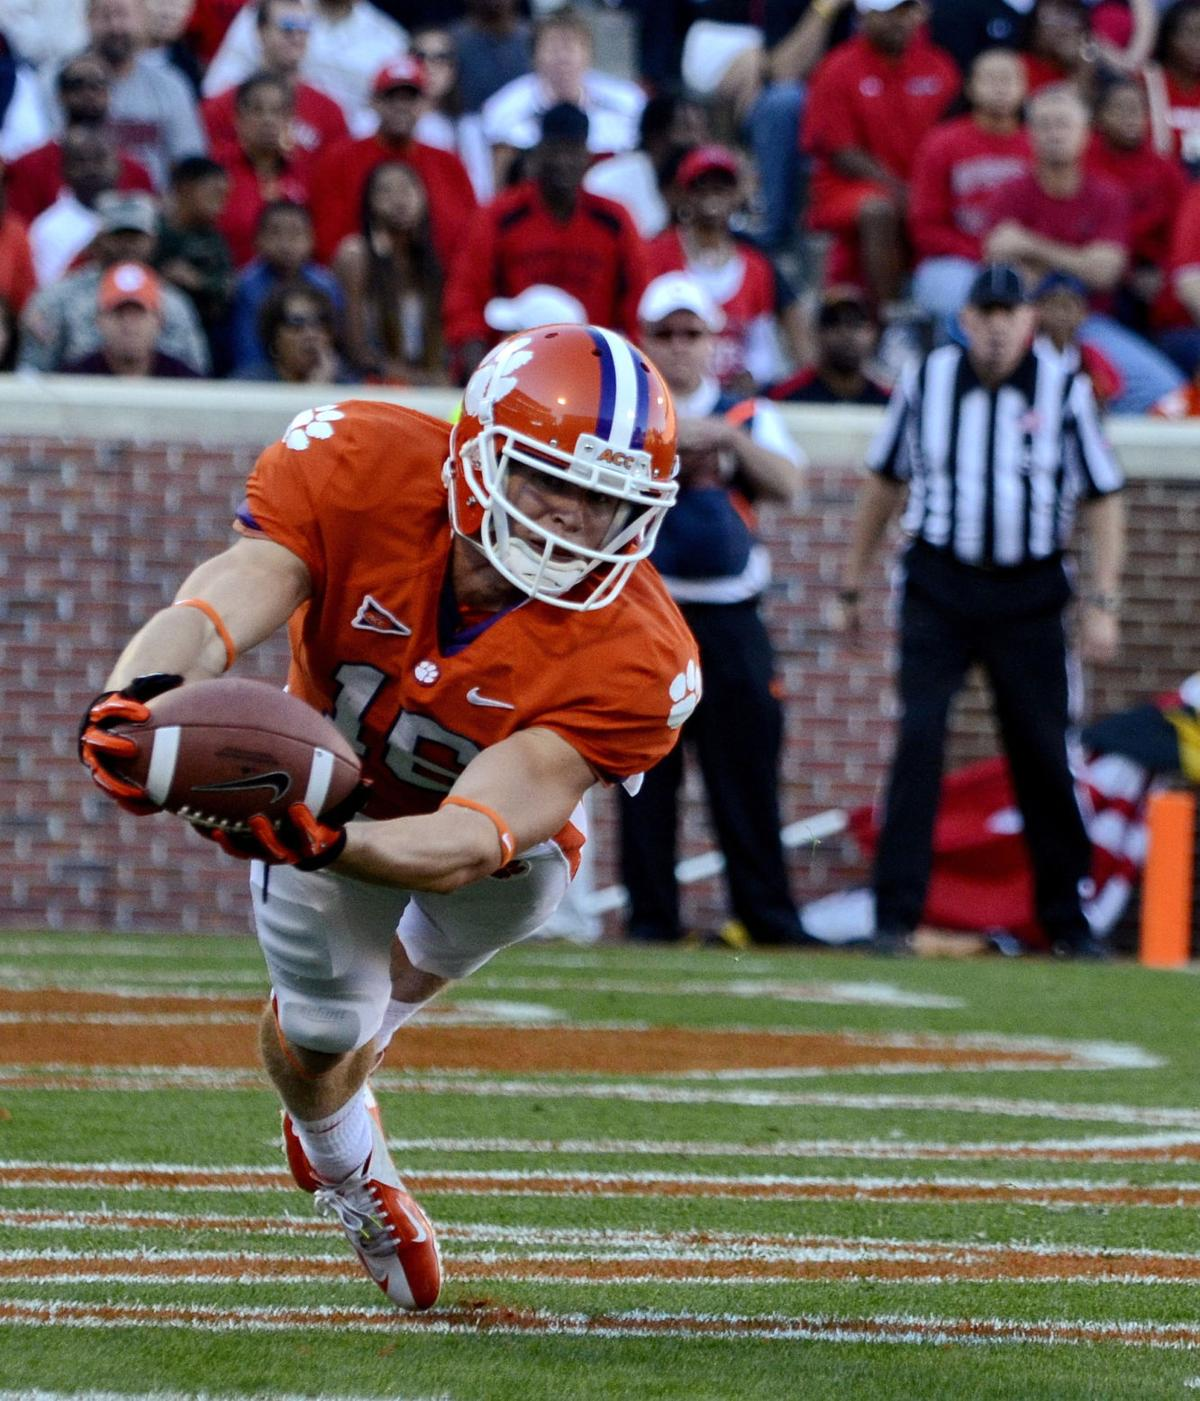 Clemson notes: High praise for Humphries, Peake plans surgery, Boyd ready for road